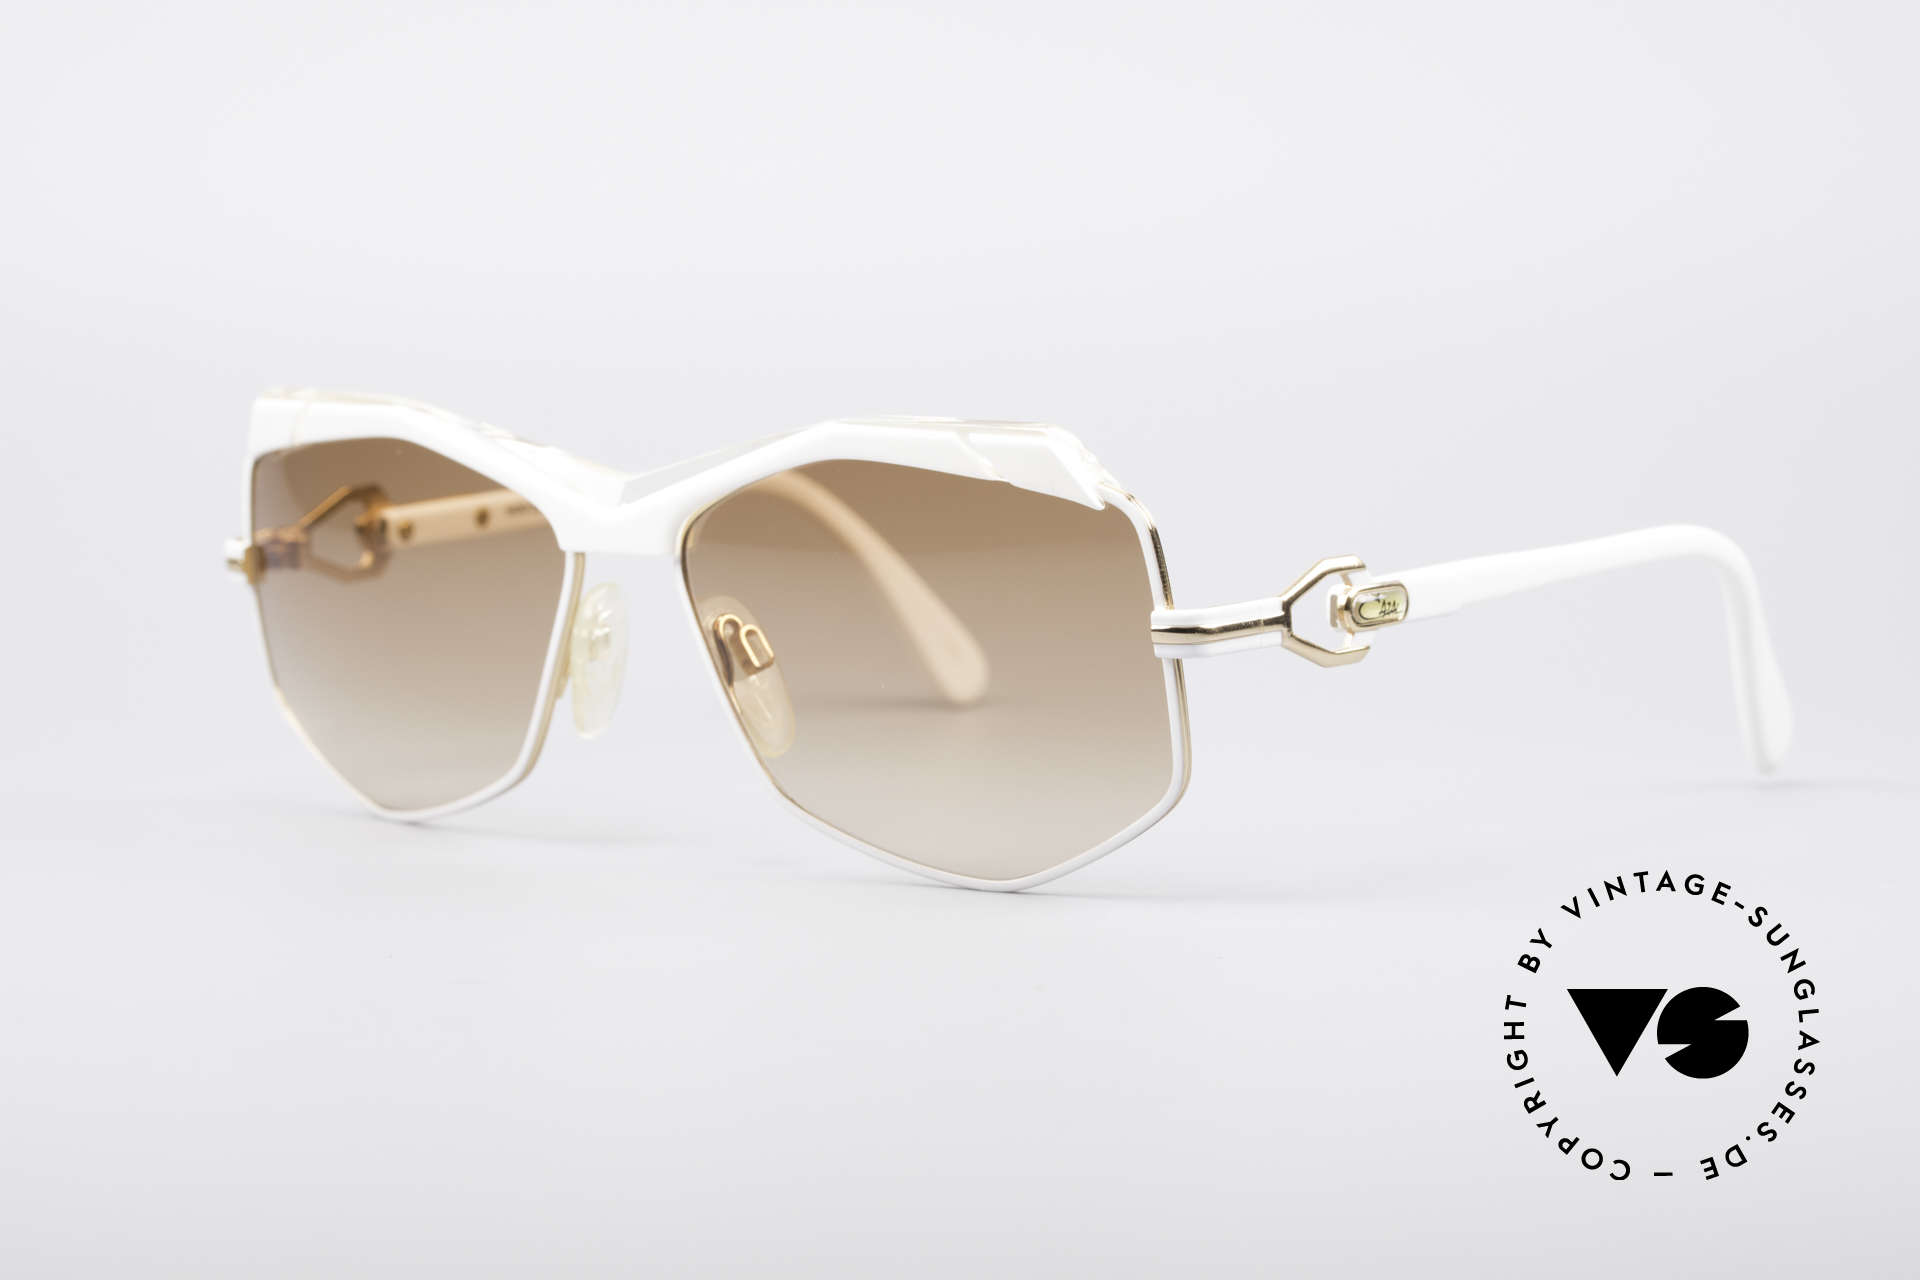 Cazal 230 80's Hip Hop Sunglasses, accessory of the US HipHop scene in the 1980's, Made for Women